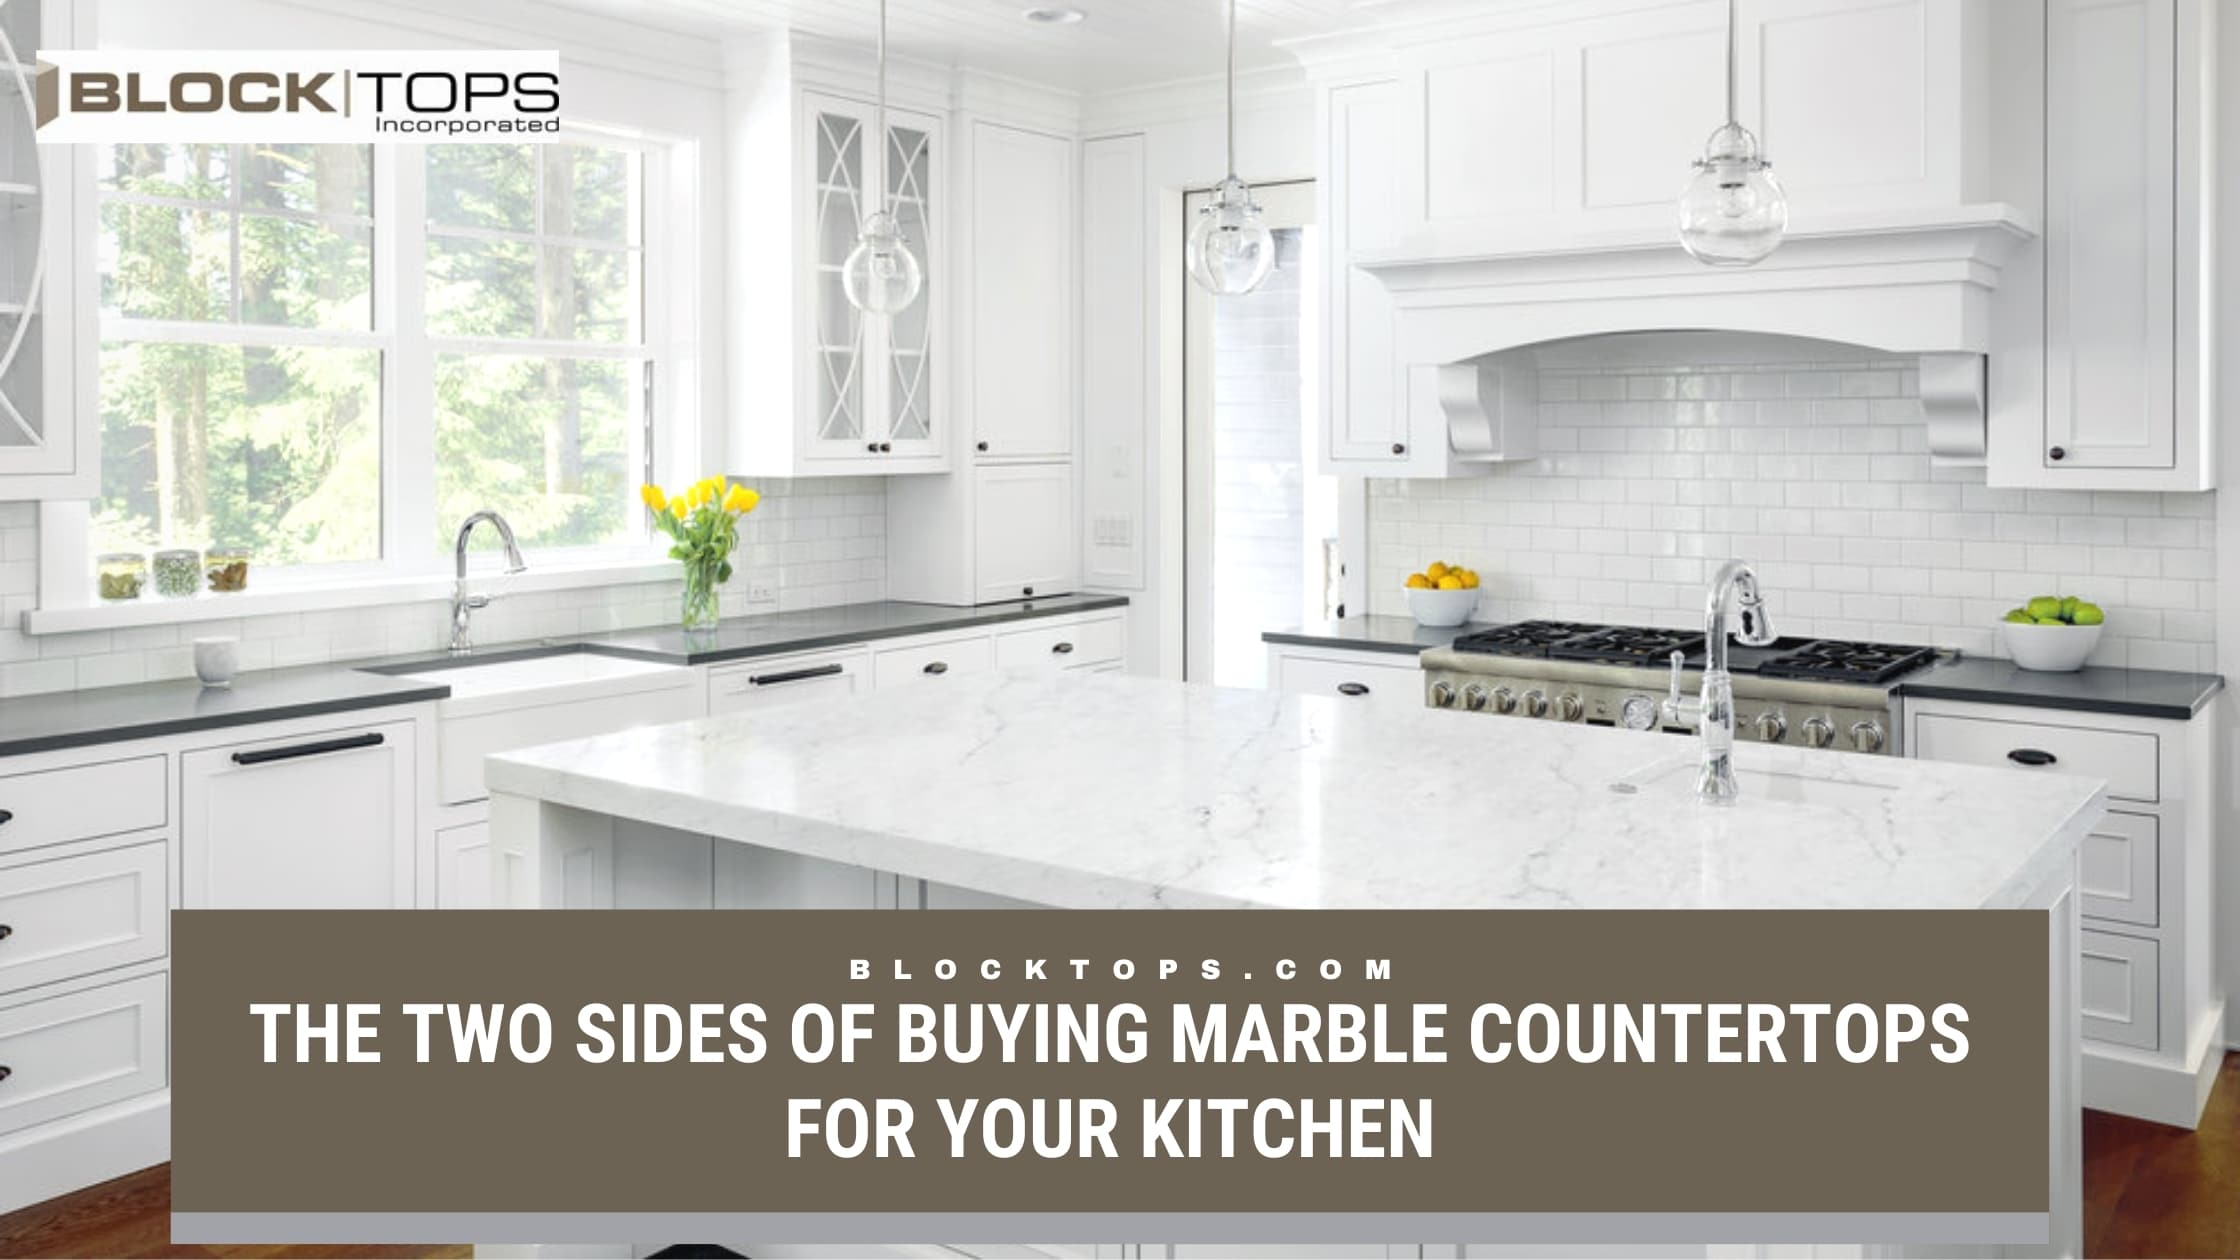 The Two Sides Of Buying Marble Countertops For Your Kitchen